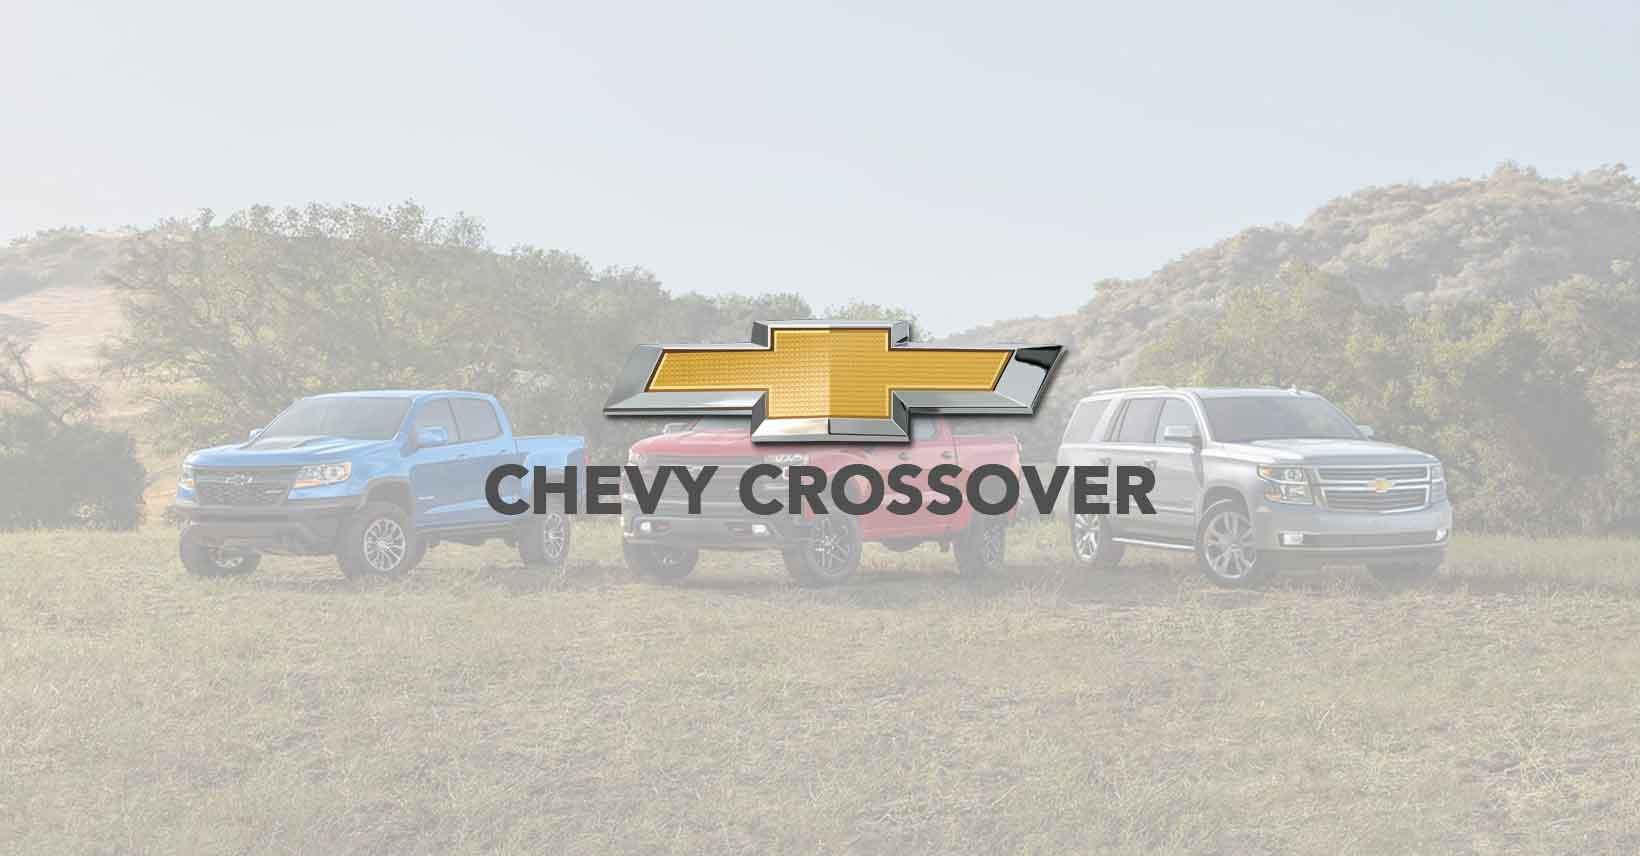 Chevy Crossover